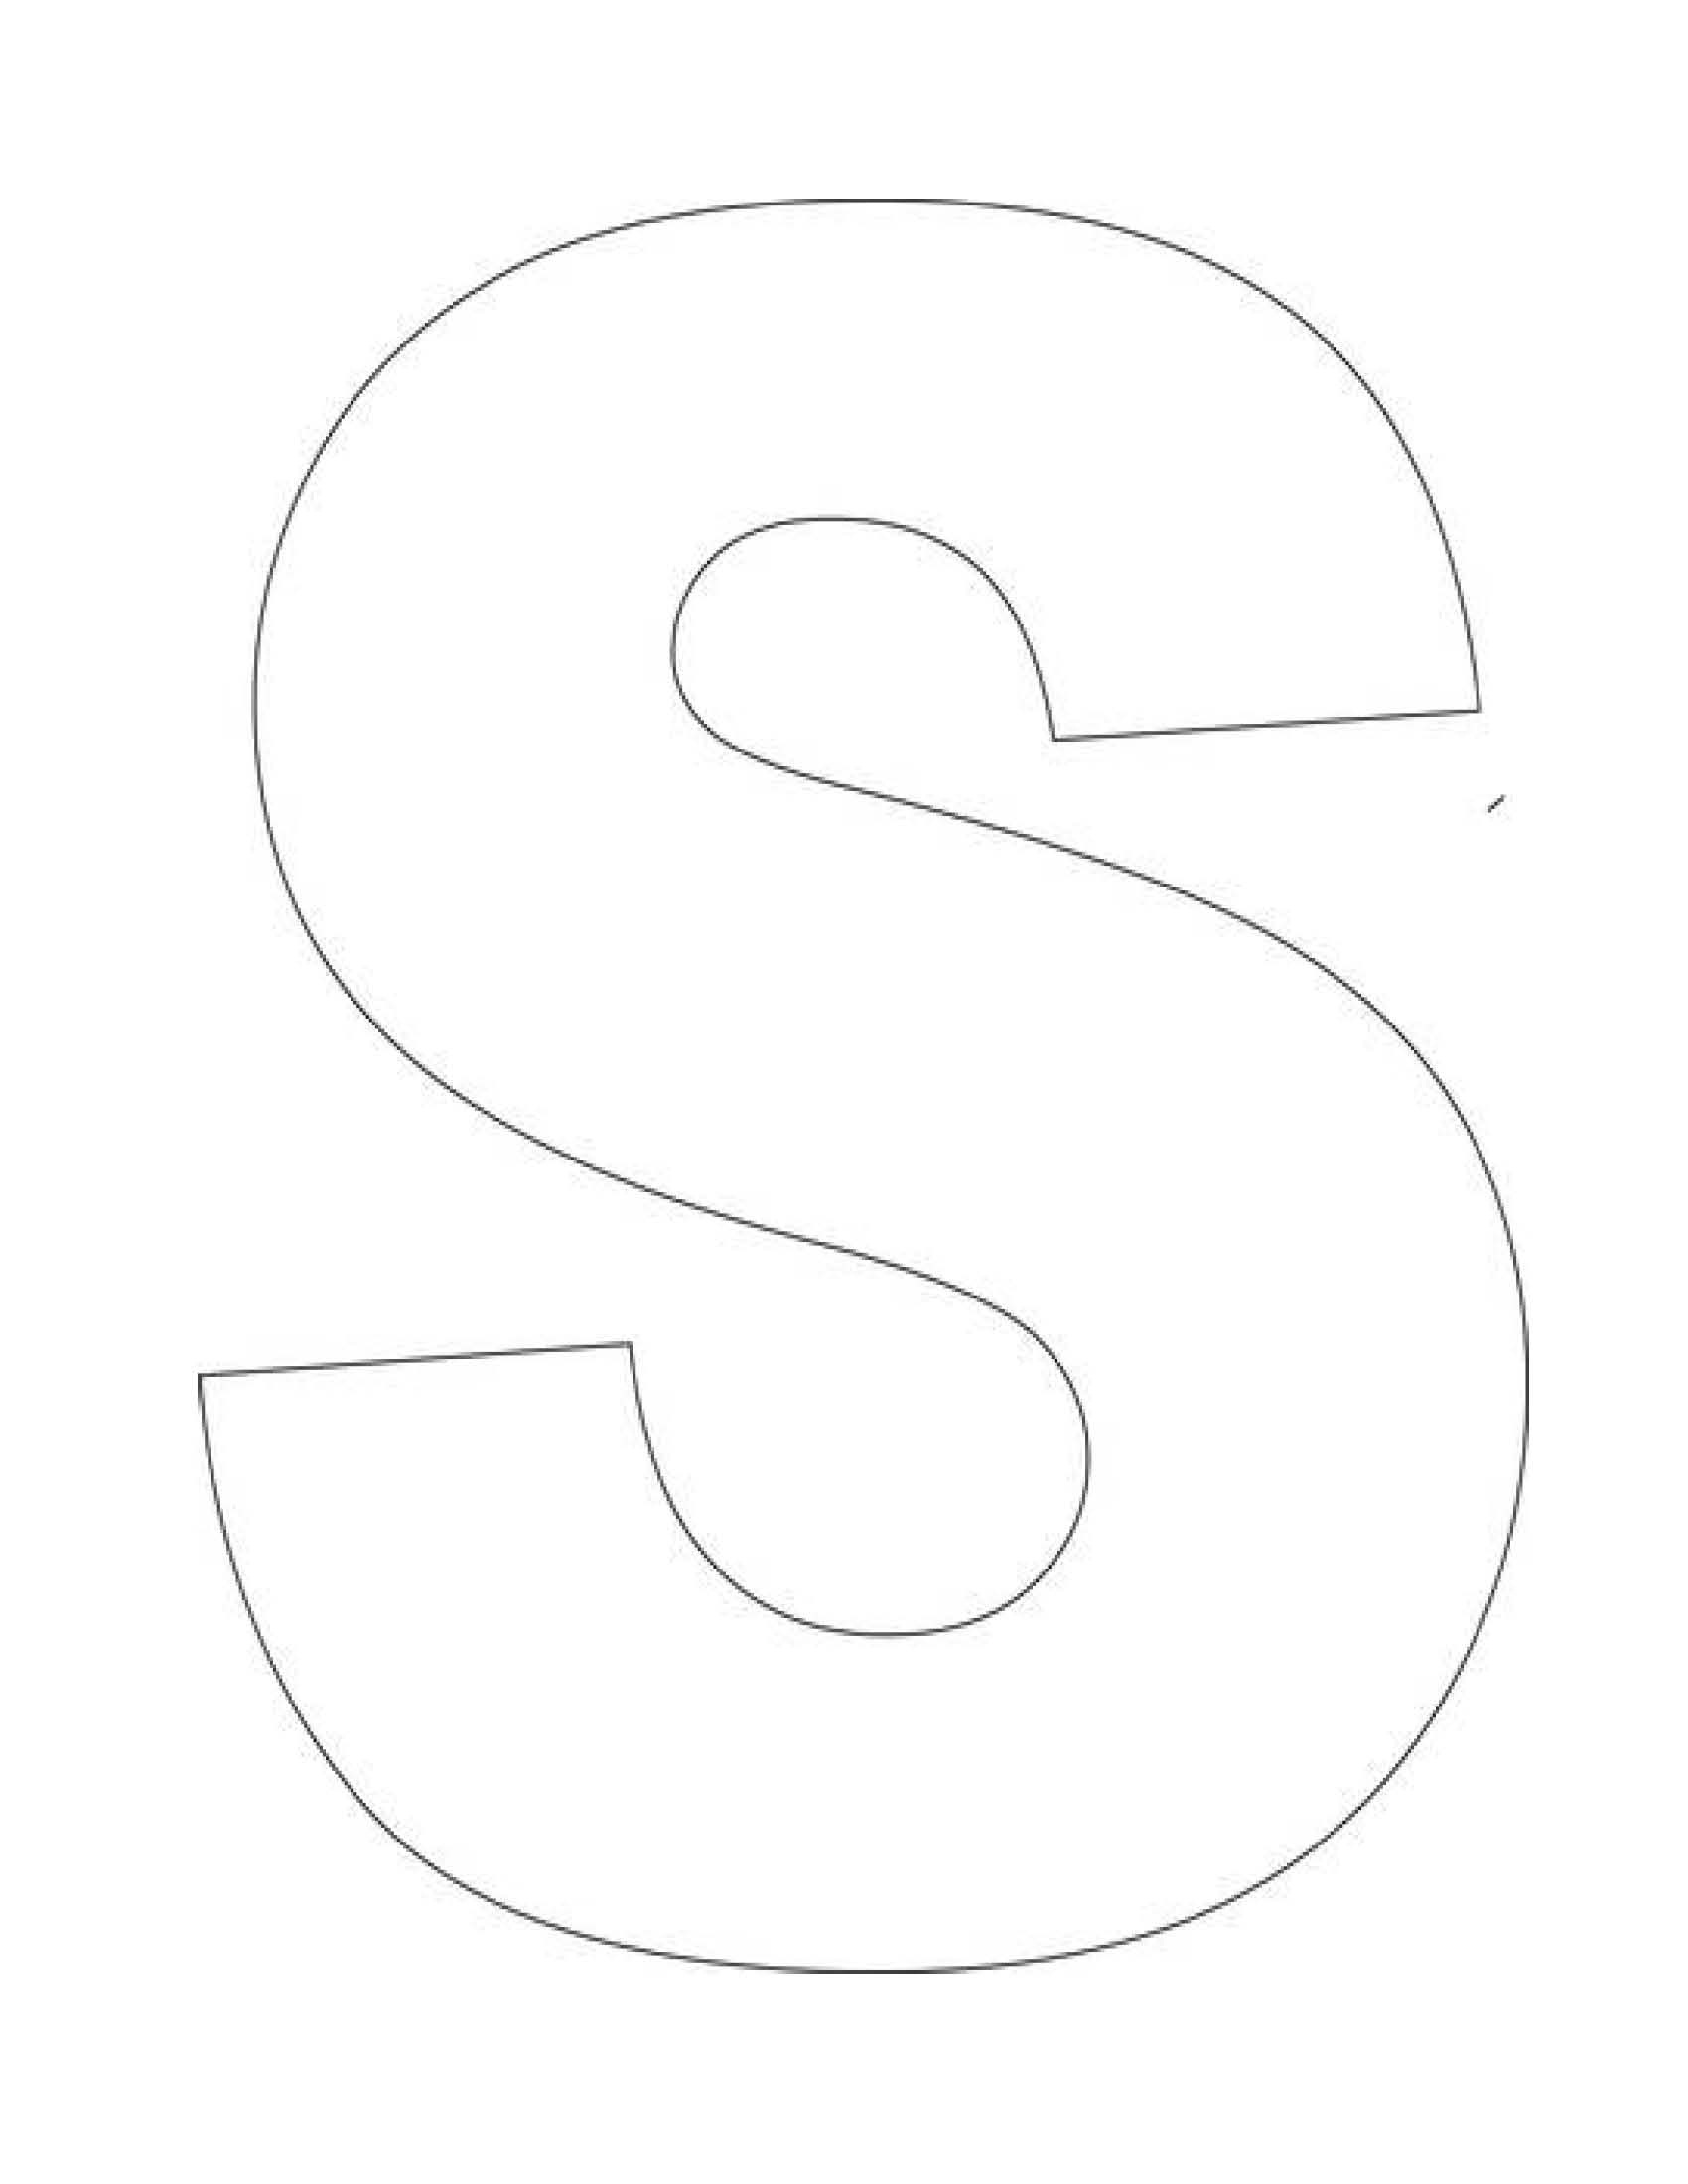 trace-letter-s-blank